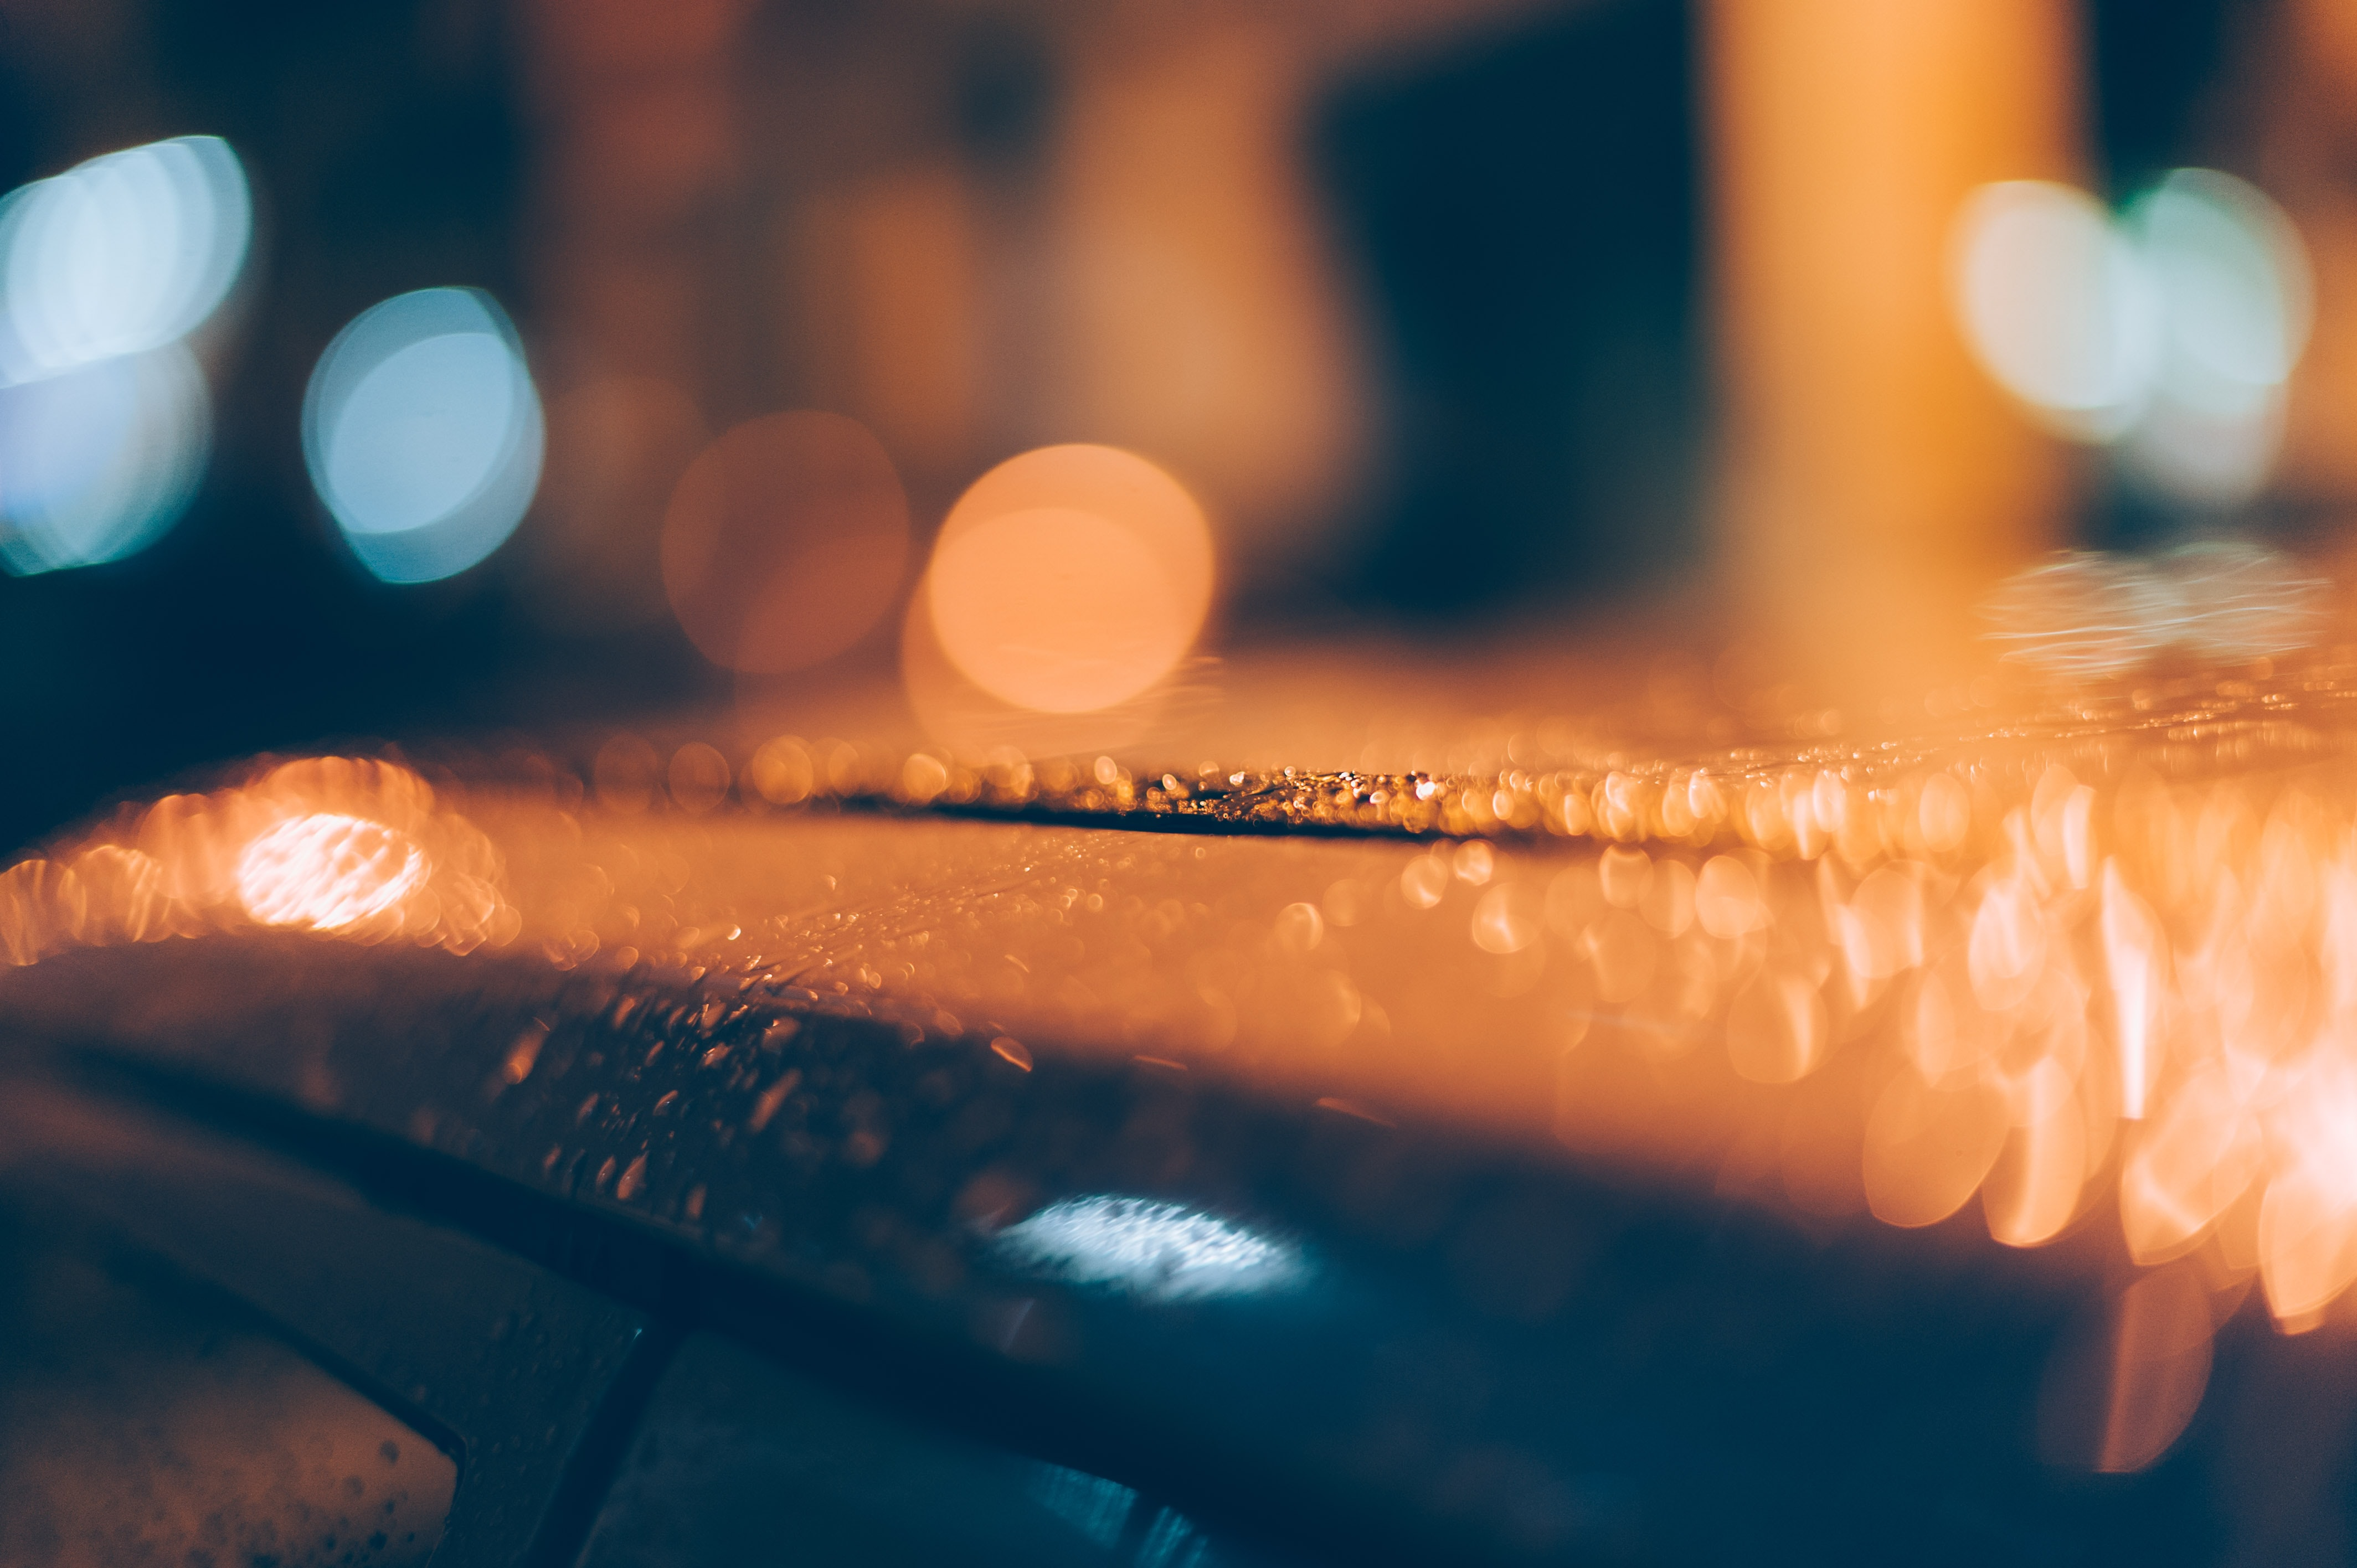 dew on roof of car bokeh photography